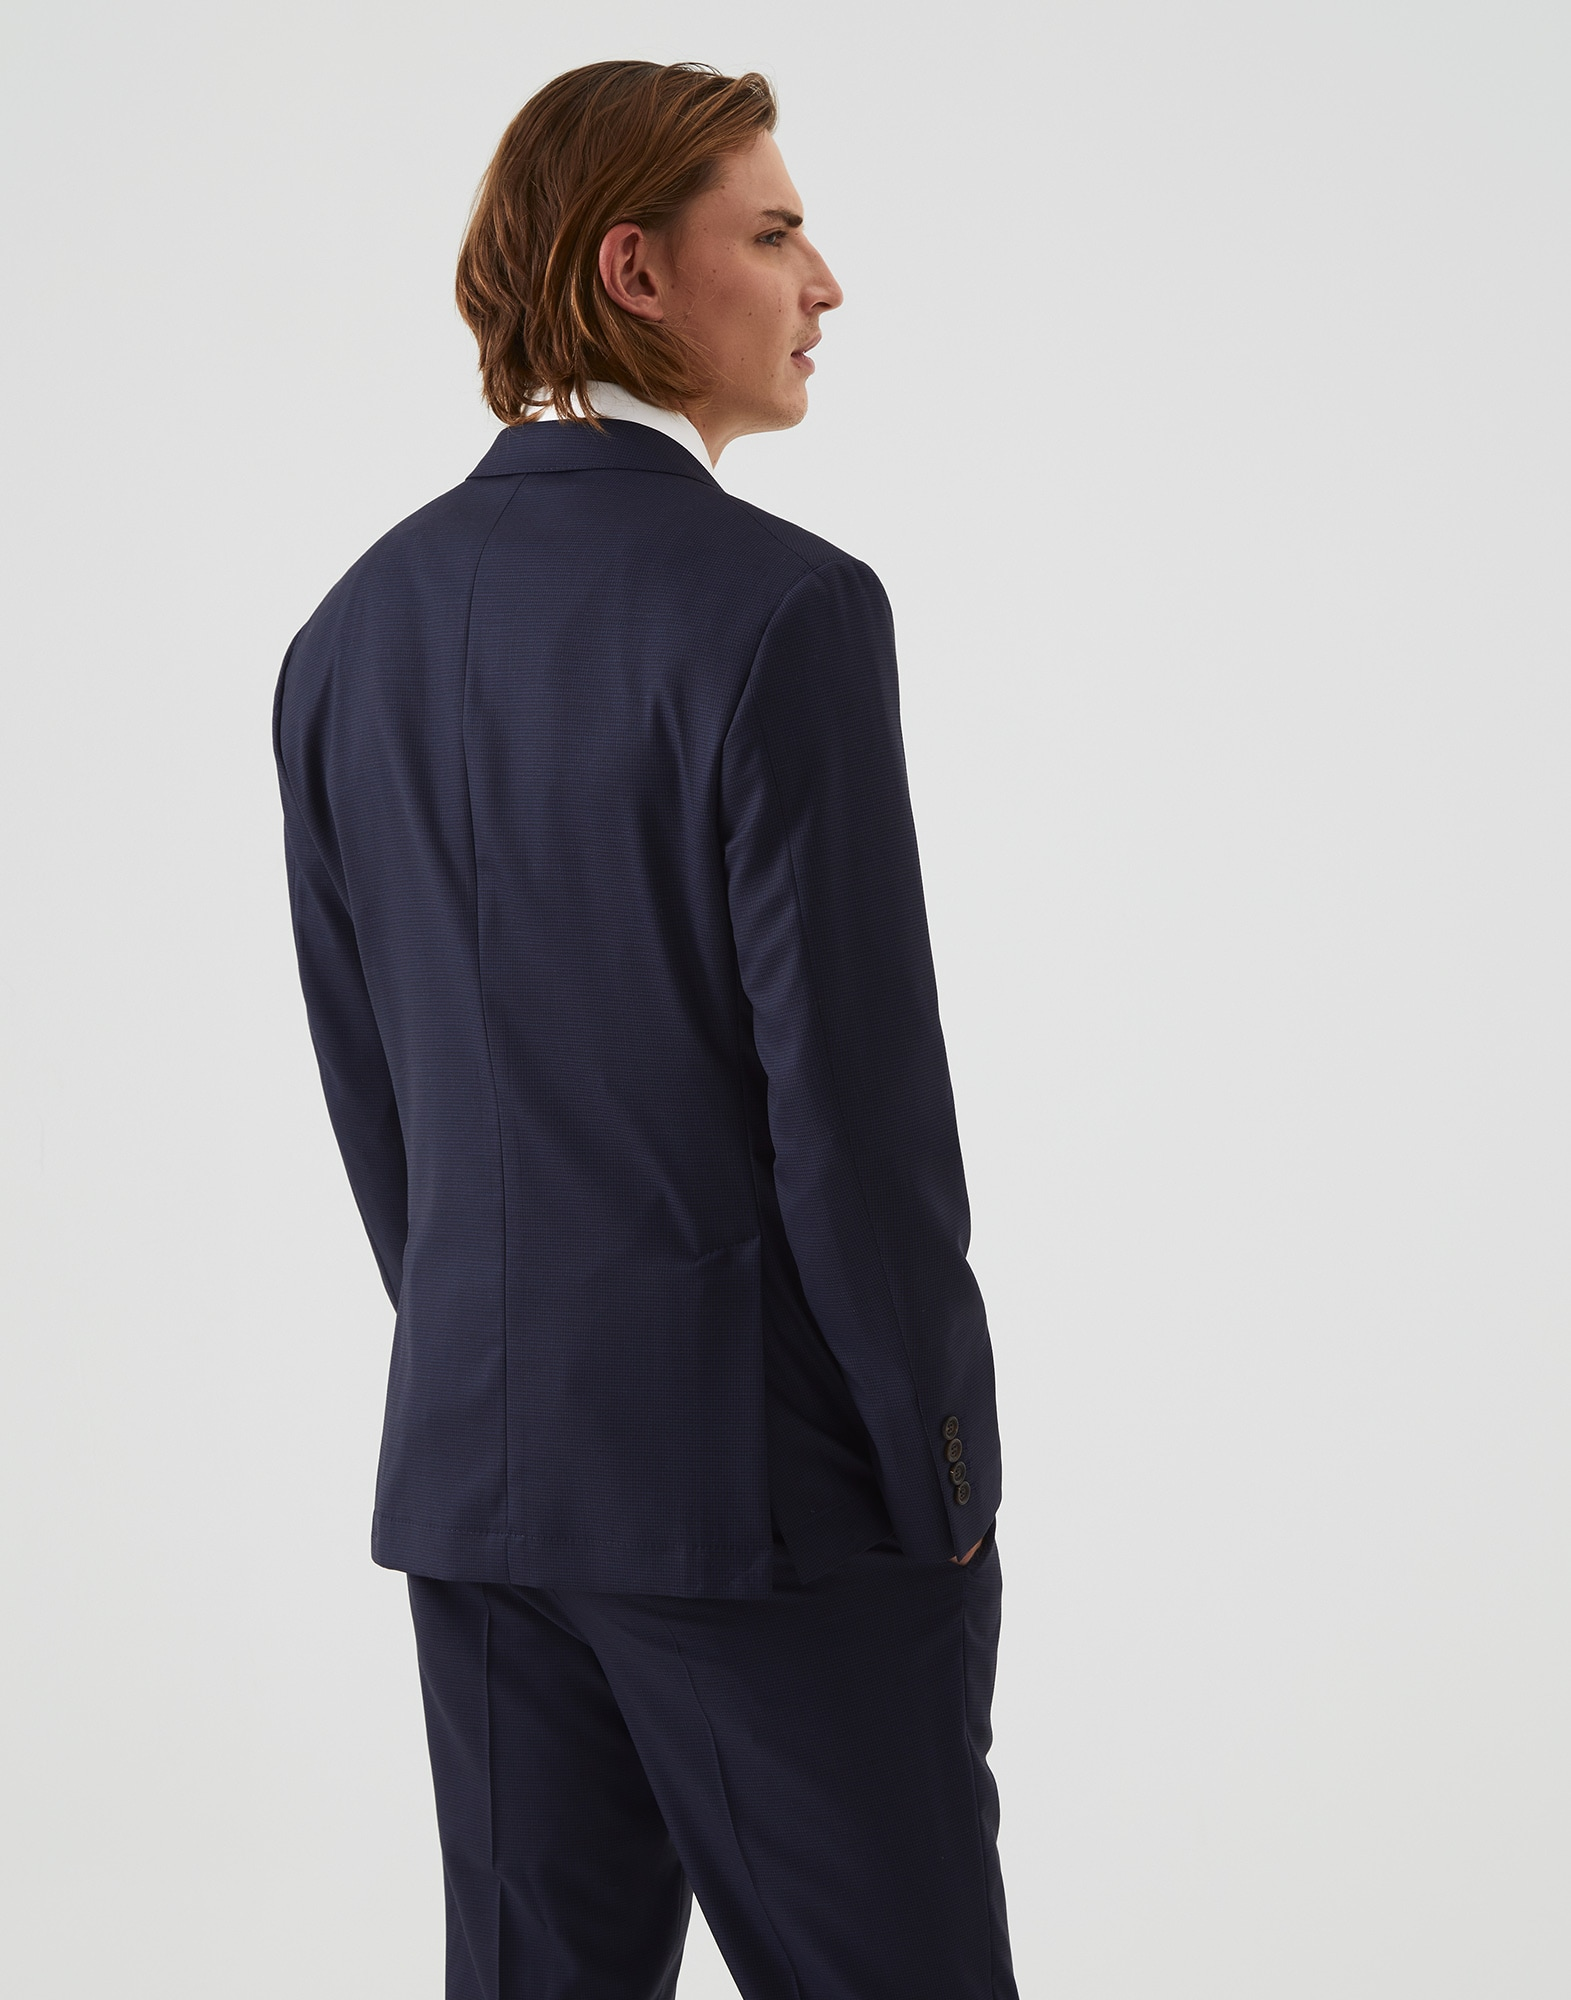 Single Breasted Blazer - Back view